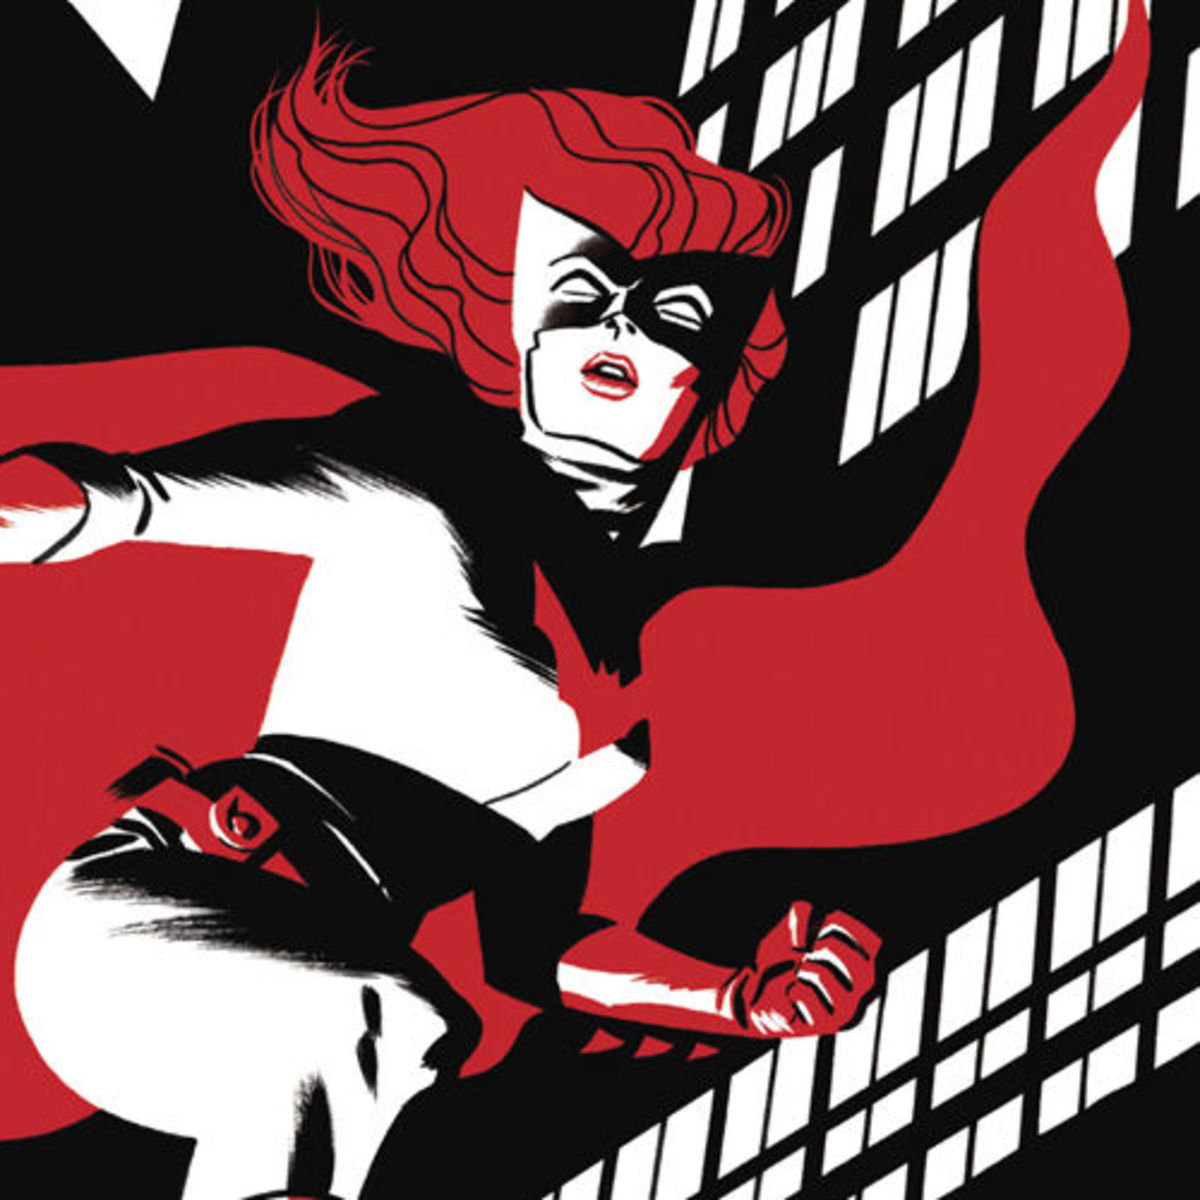 Fans React To The CW's New 'Batwoman' Television Series